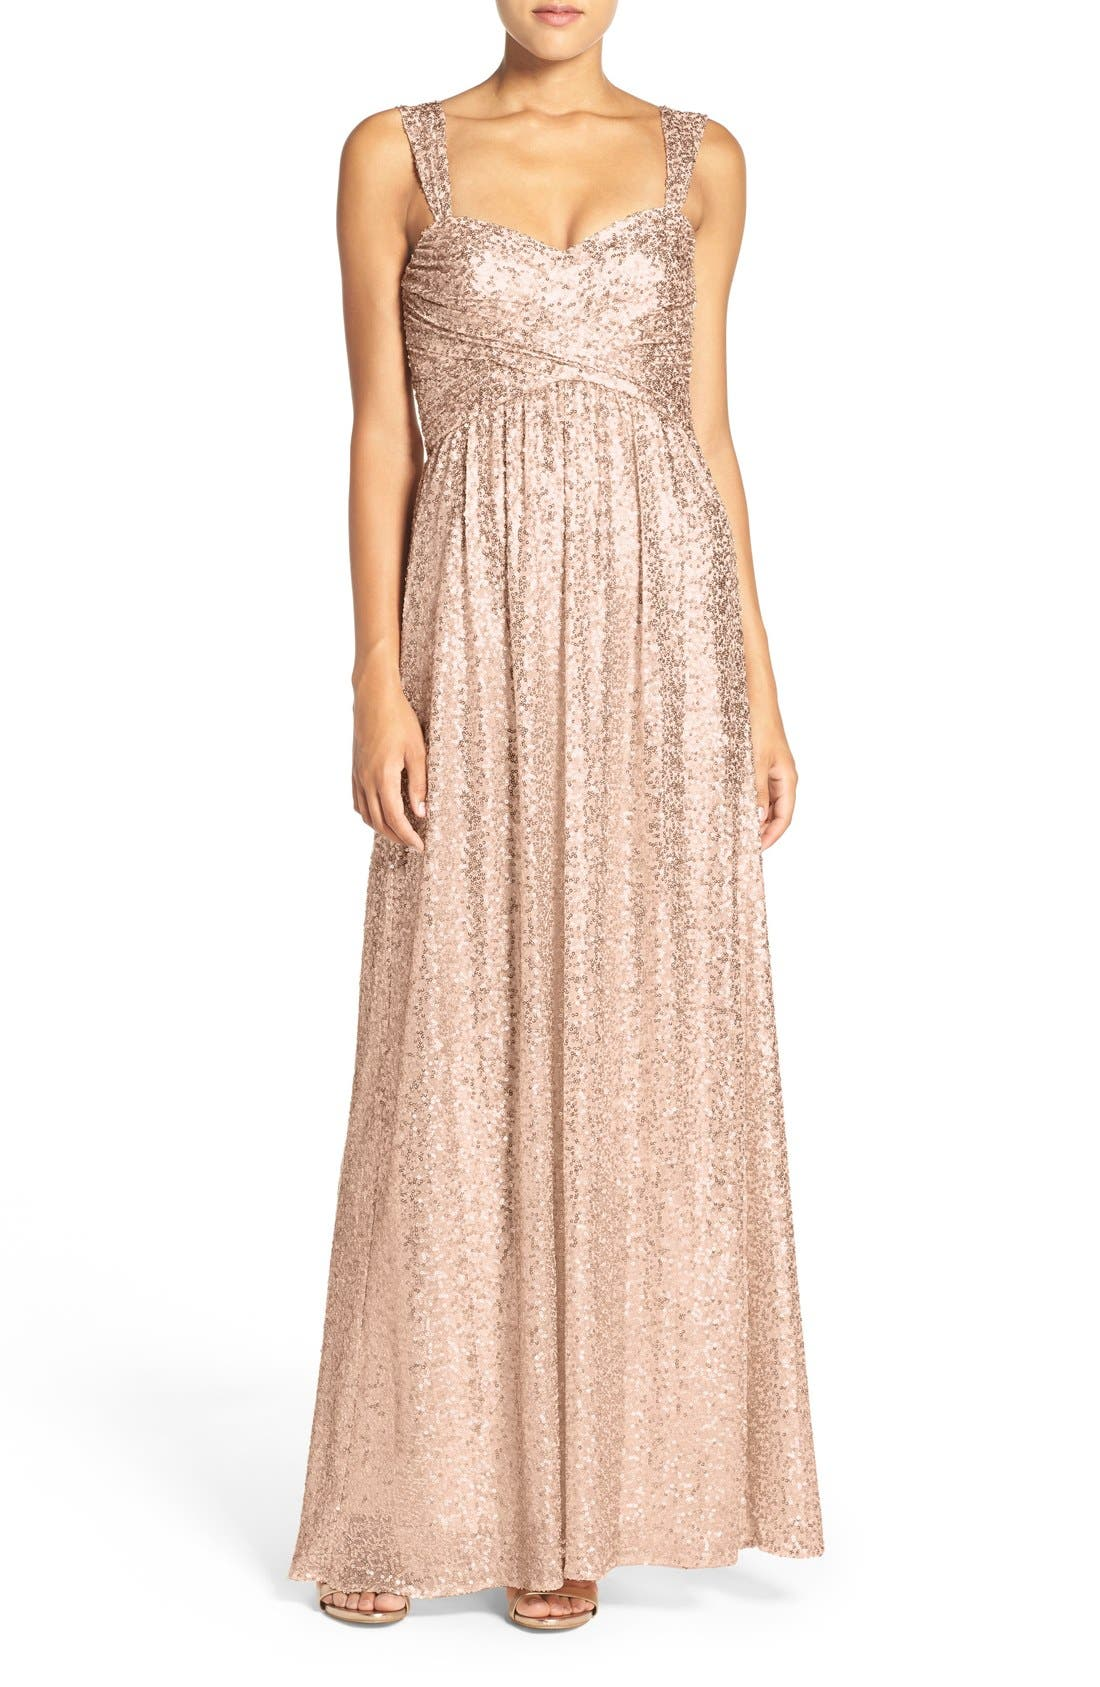 Alternate Image 1 Selected - Amsale 'Loire' Sweetheart Neck Sequin Gown